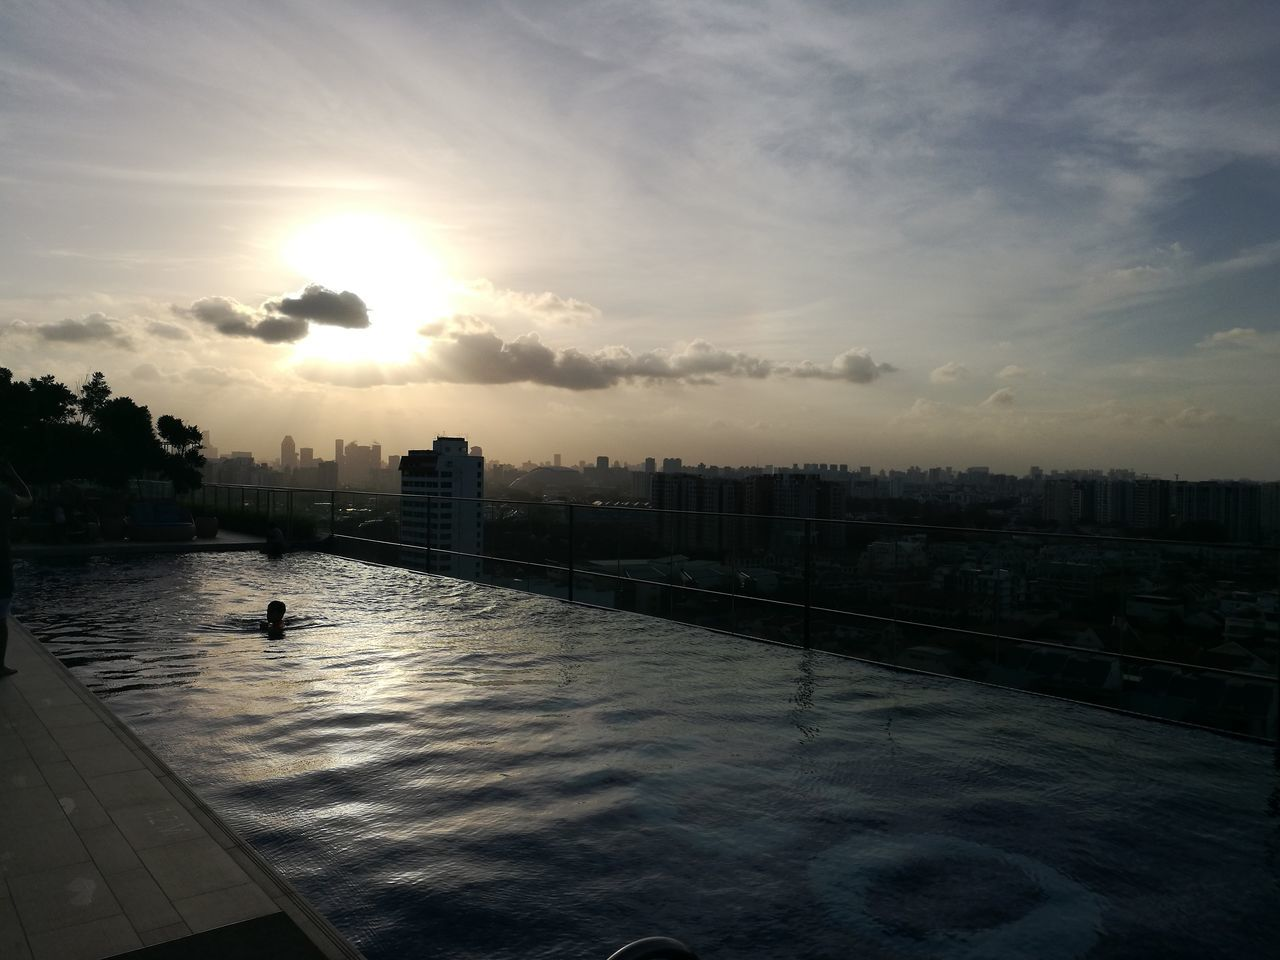 Water Sunlight Wet Sunset Social Issues Cloud - Sky Outdoors Nature Sky No People Day Hotelindigo Katong Rooftop Rooftoppool sunset #sun #clouds #skylovers #sky #nature #beautifulinnature #naturalbeauty photography landscape Sunsets